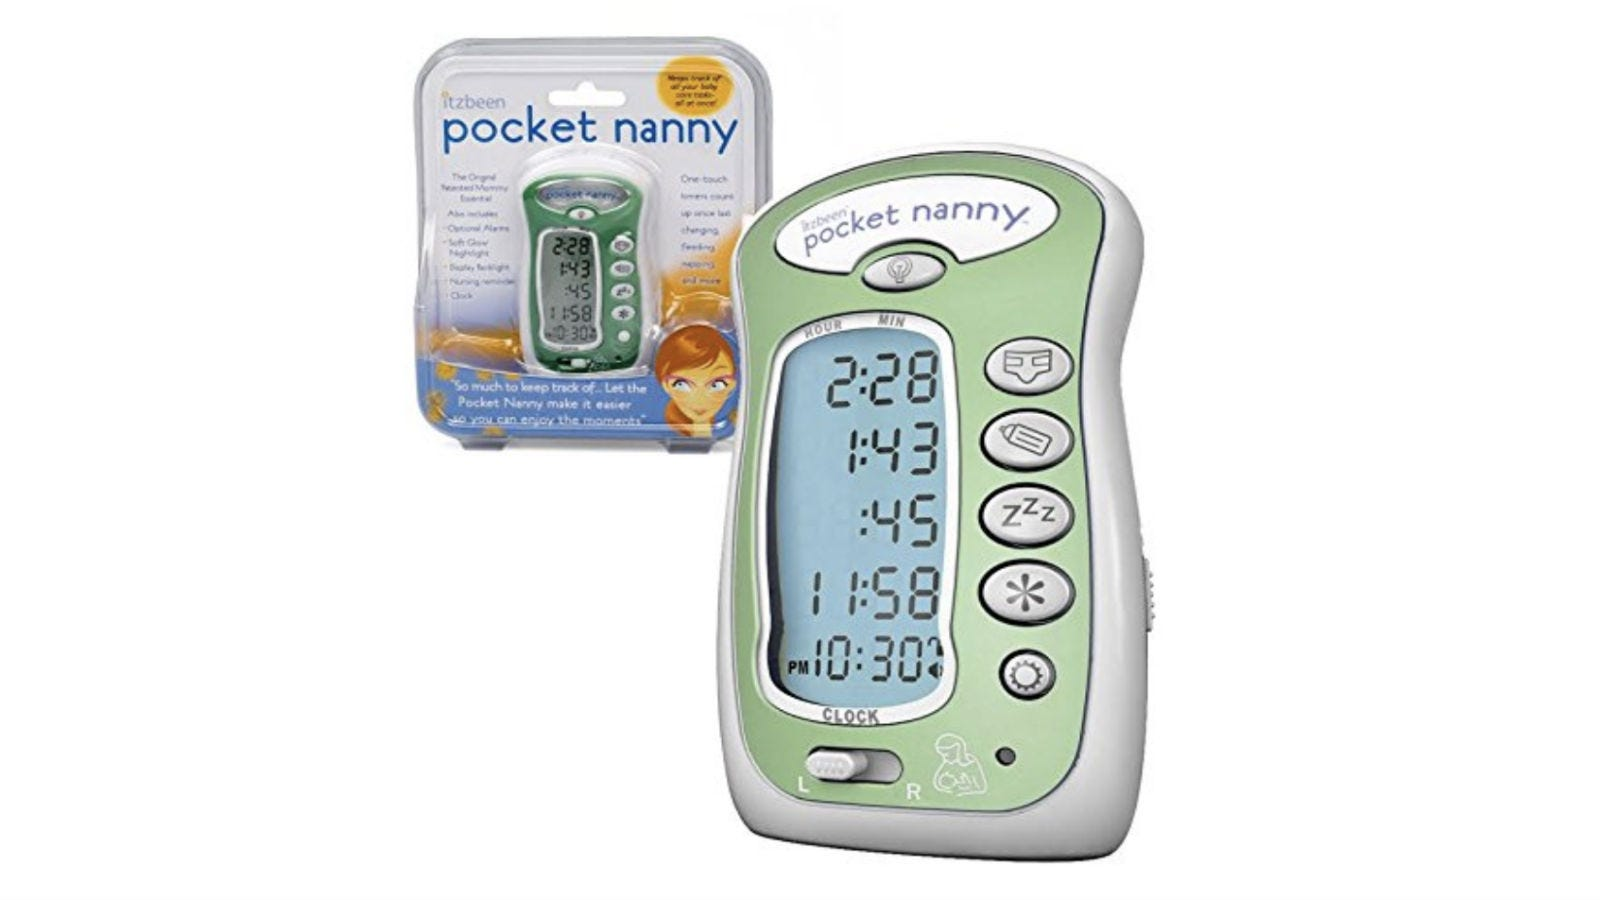 The Itzbeen Pocket Nanny in its package next to one outside the packaging.